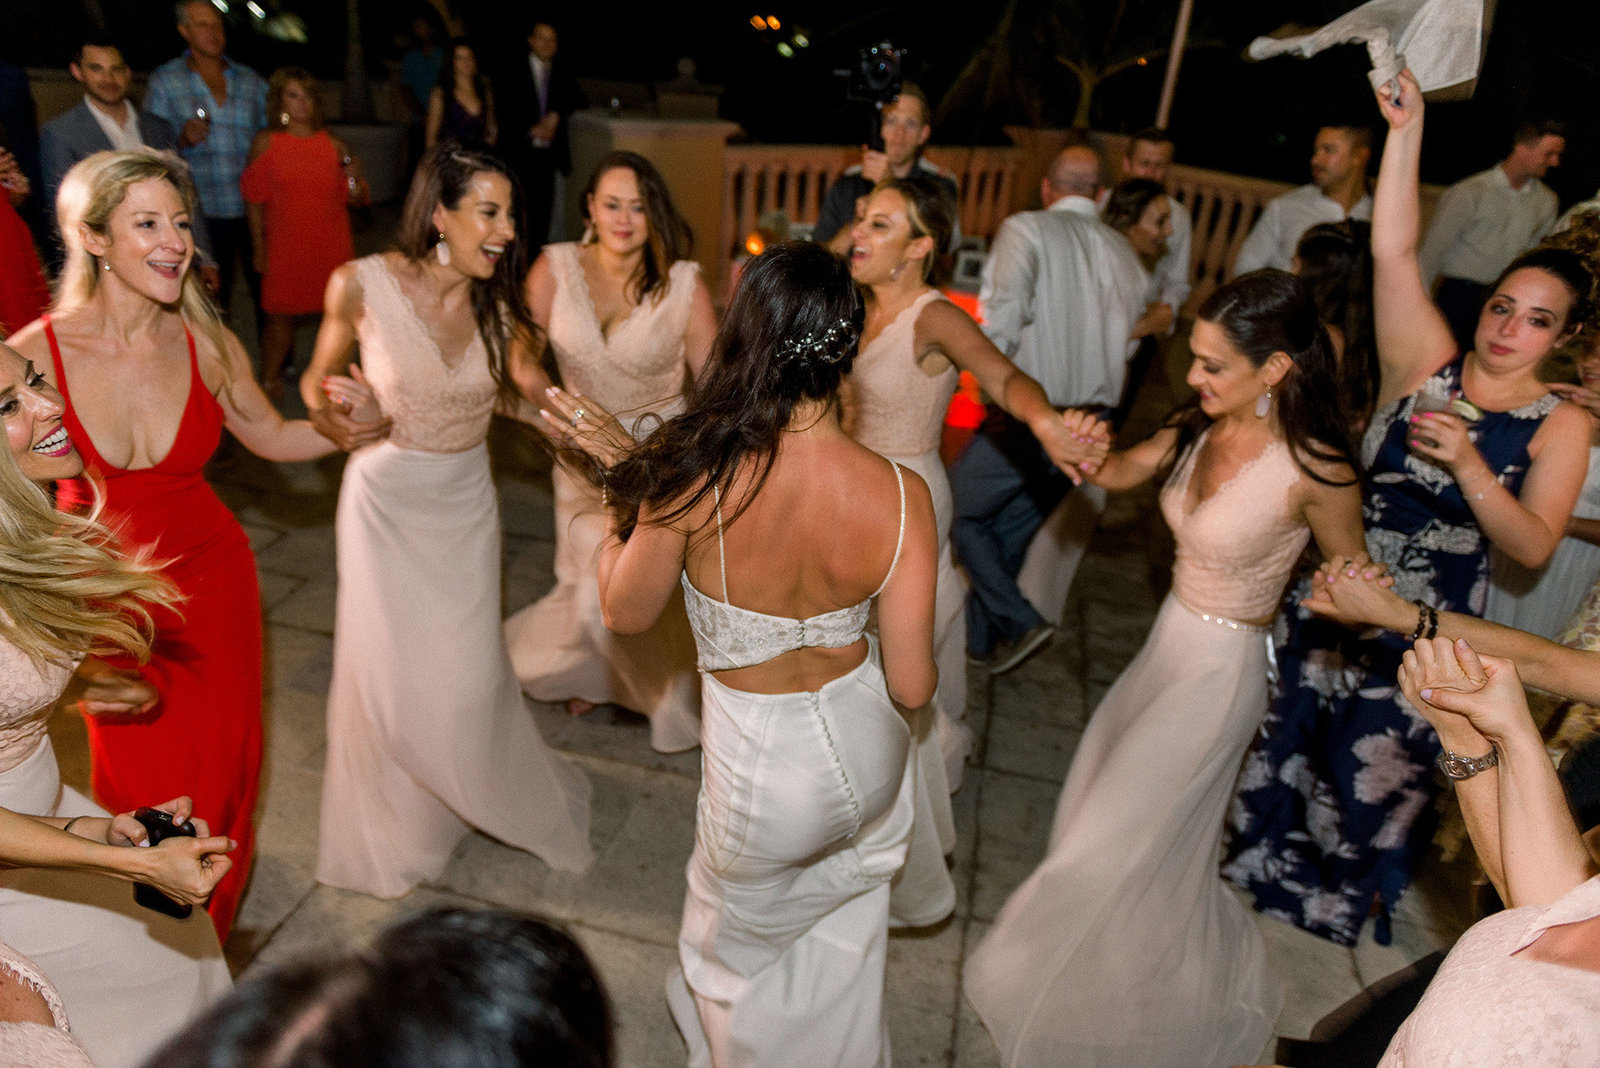 20180512-Pura-Soul-Photo-Ritz-Grand-Cayman-Wedding-163